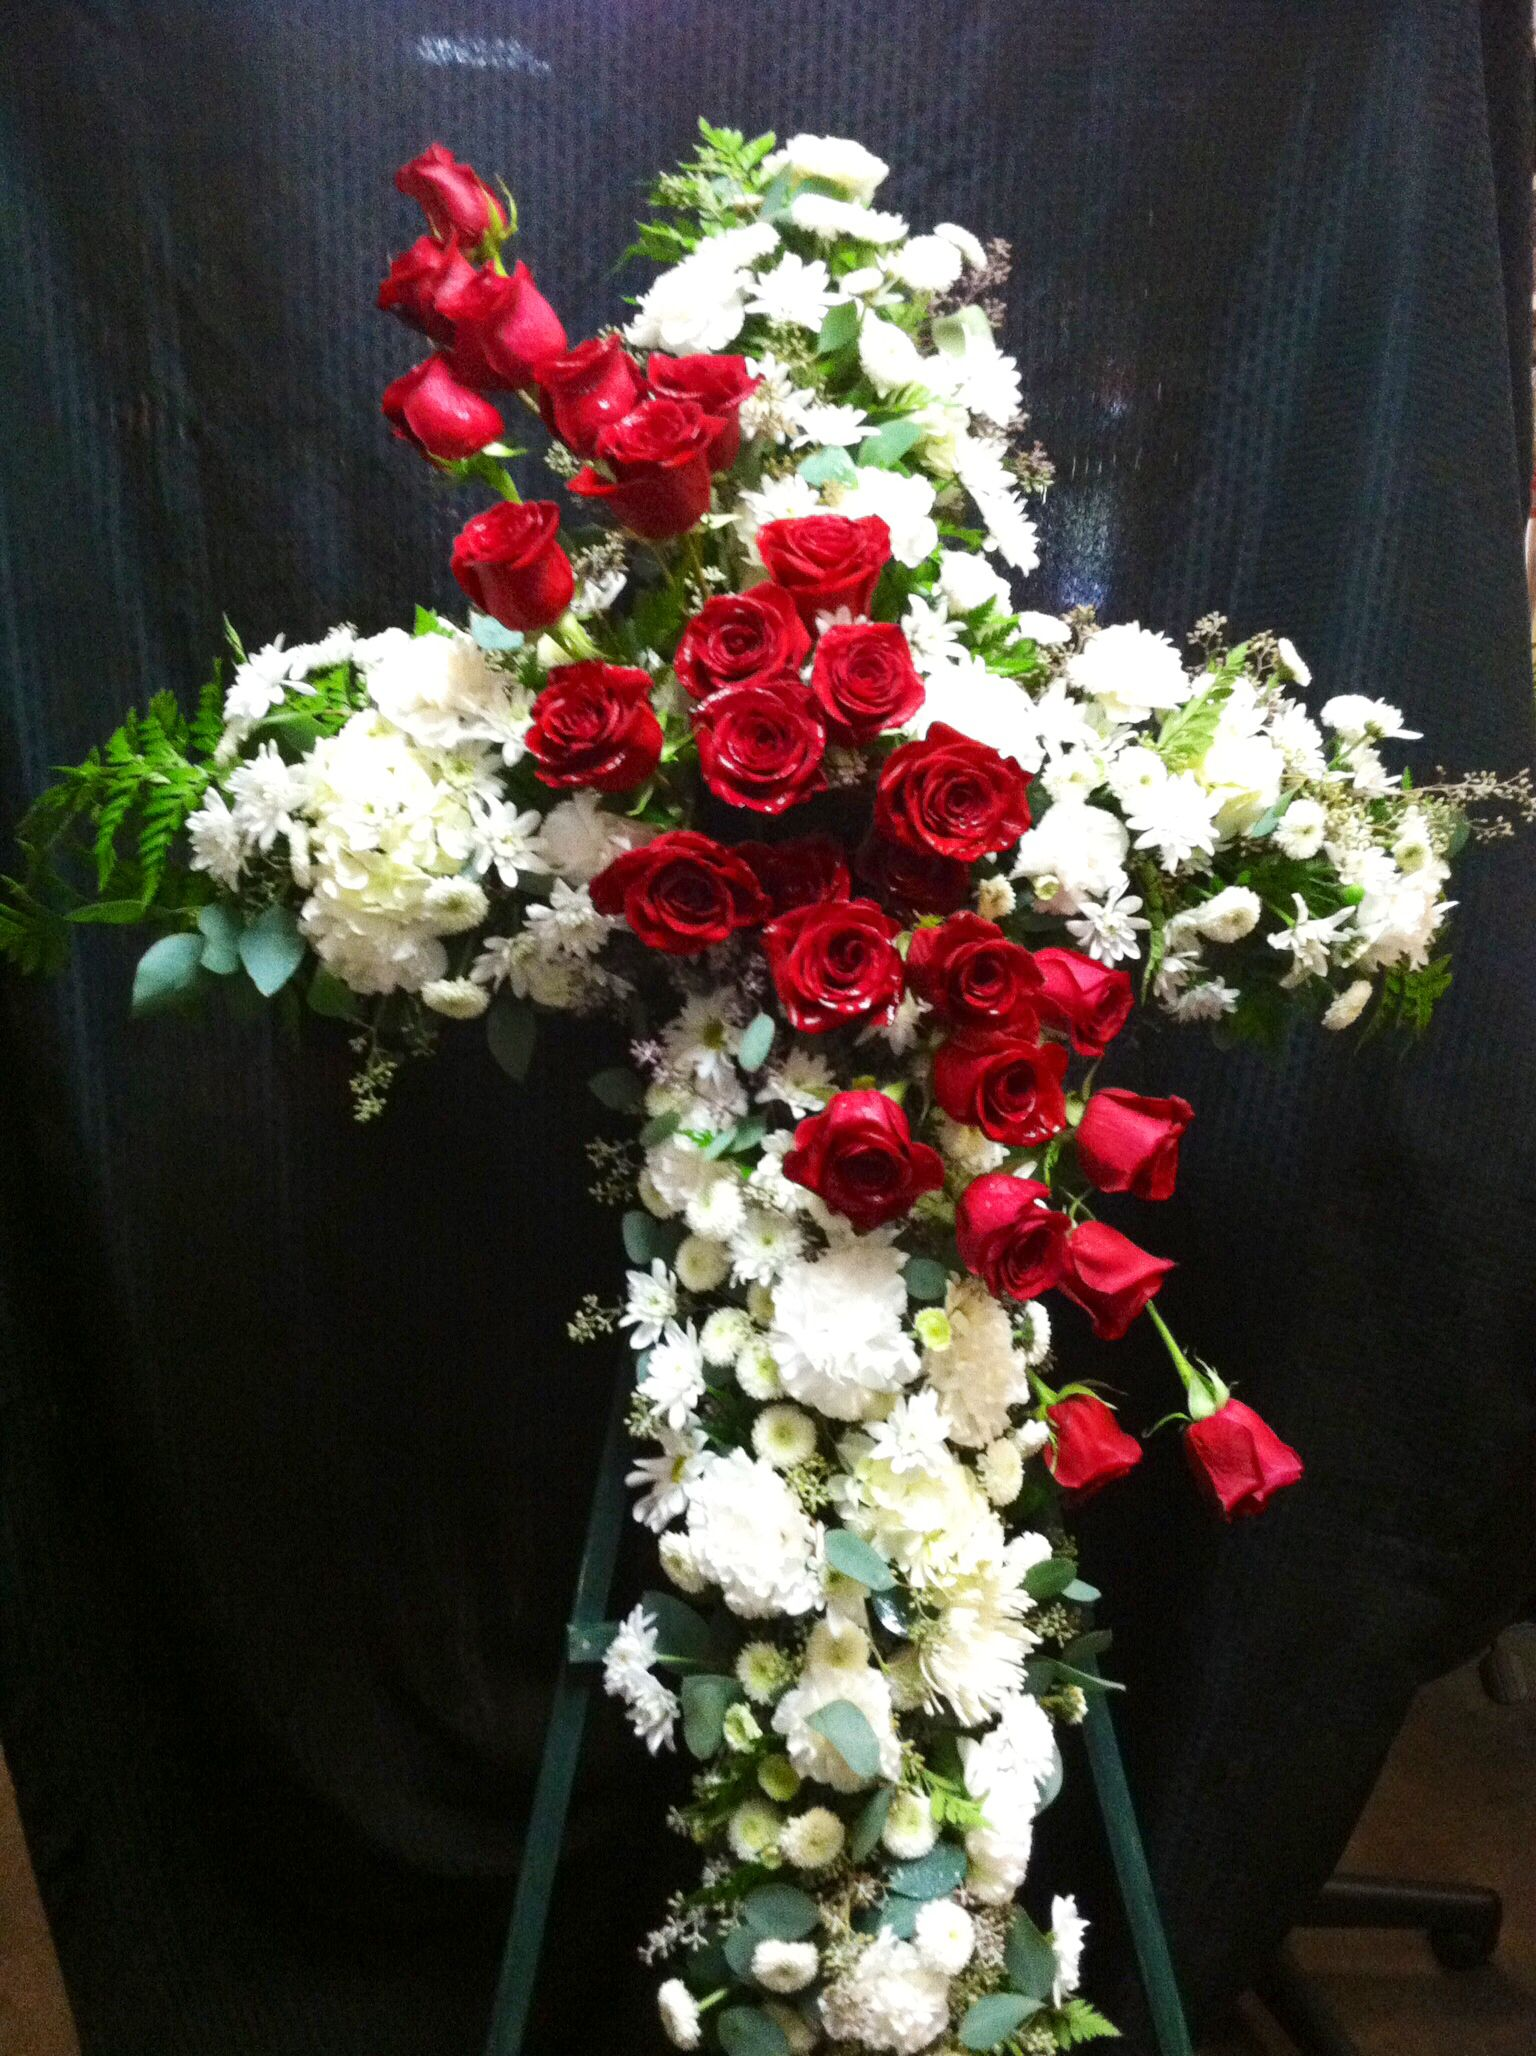 Pin by Anula on Funeral | Pinterest | Sympathy flowers